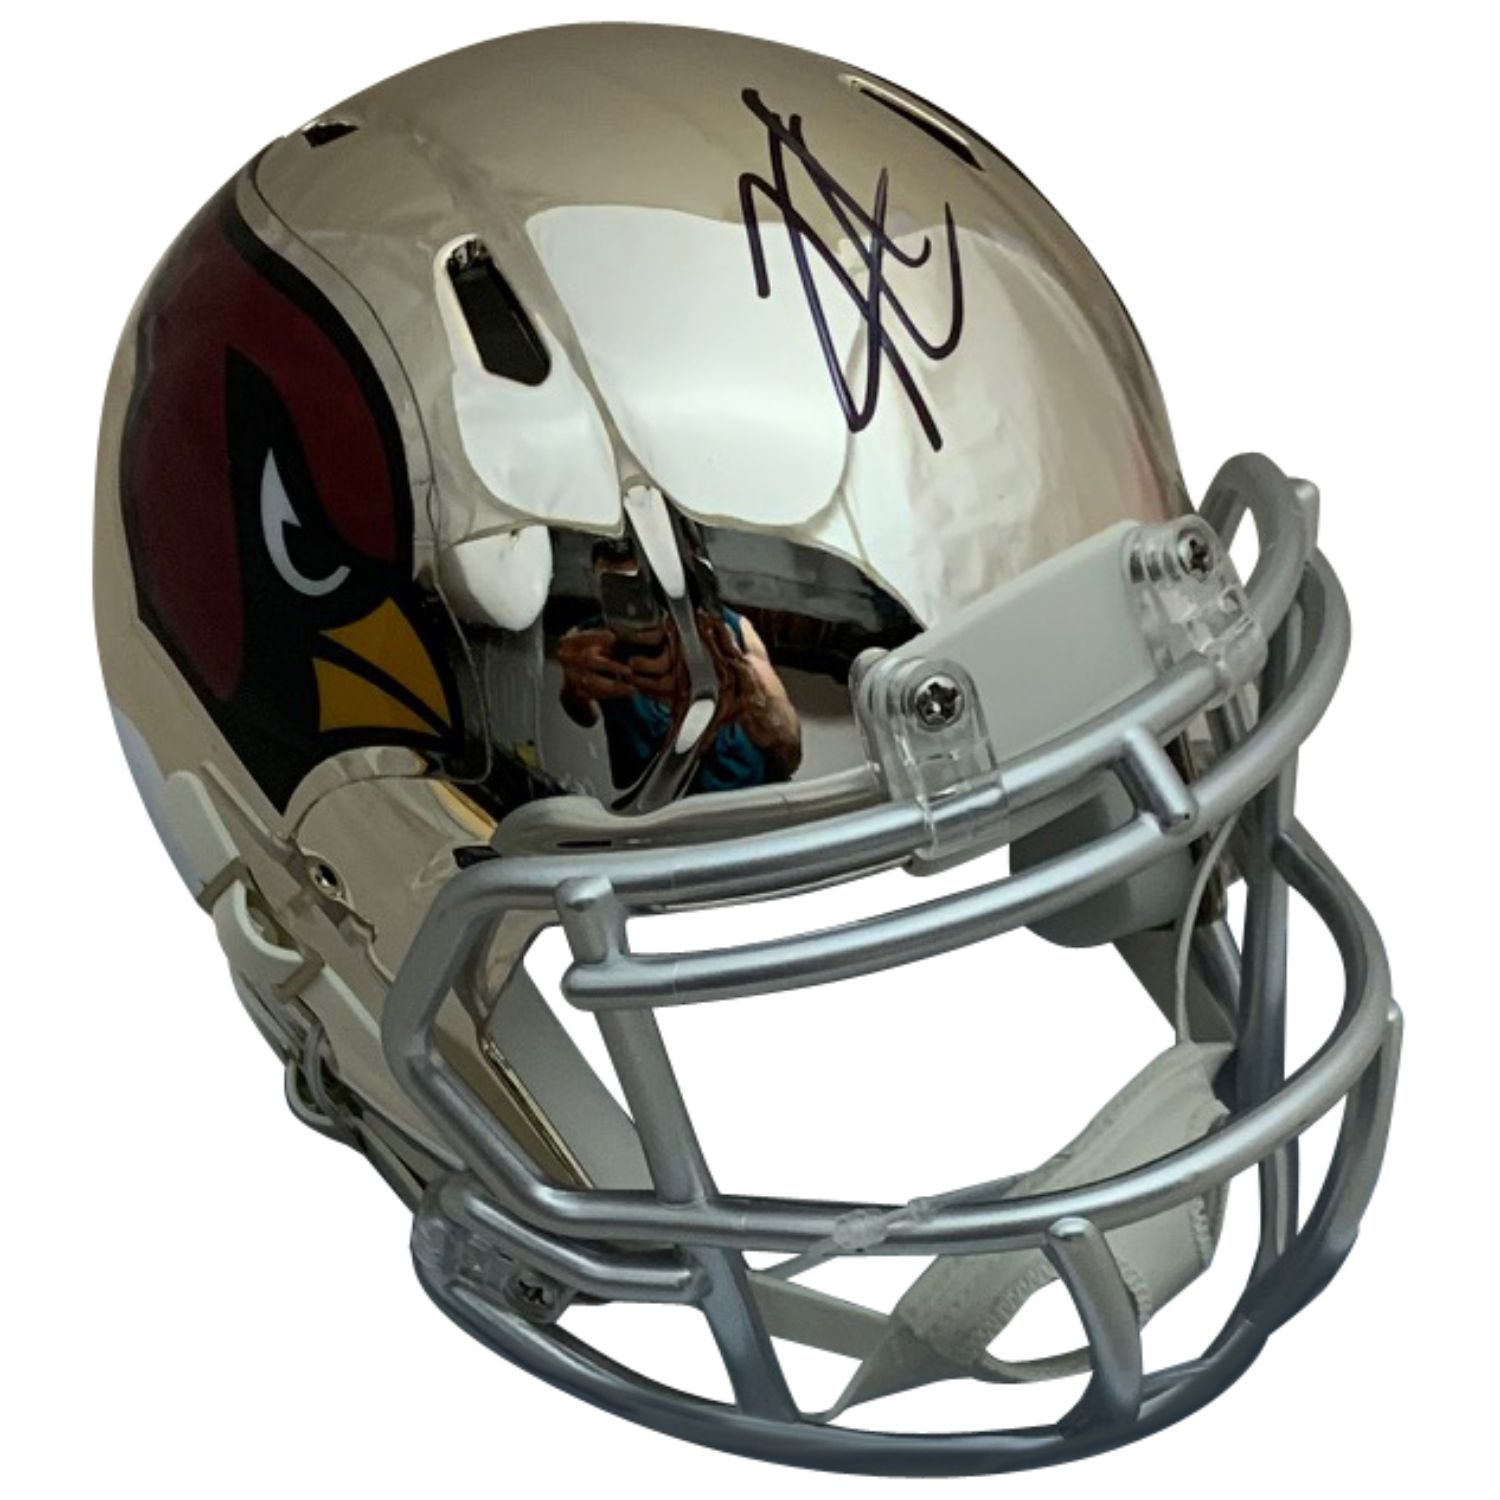 Kyler Murray Autographed Arizona Cardinals Signed Chrome Football Mini Helmet PSA DNA COA